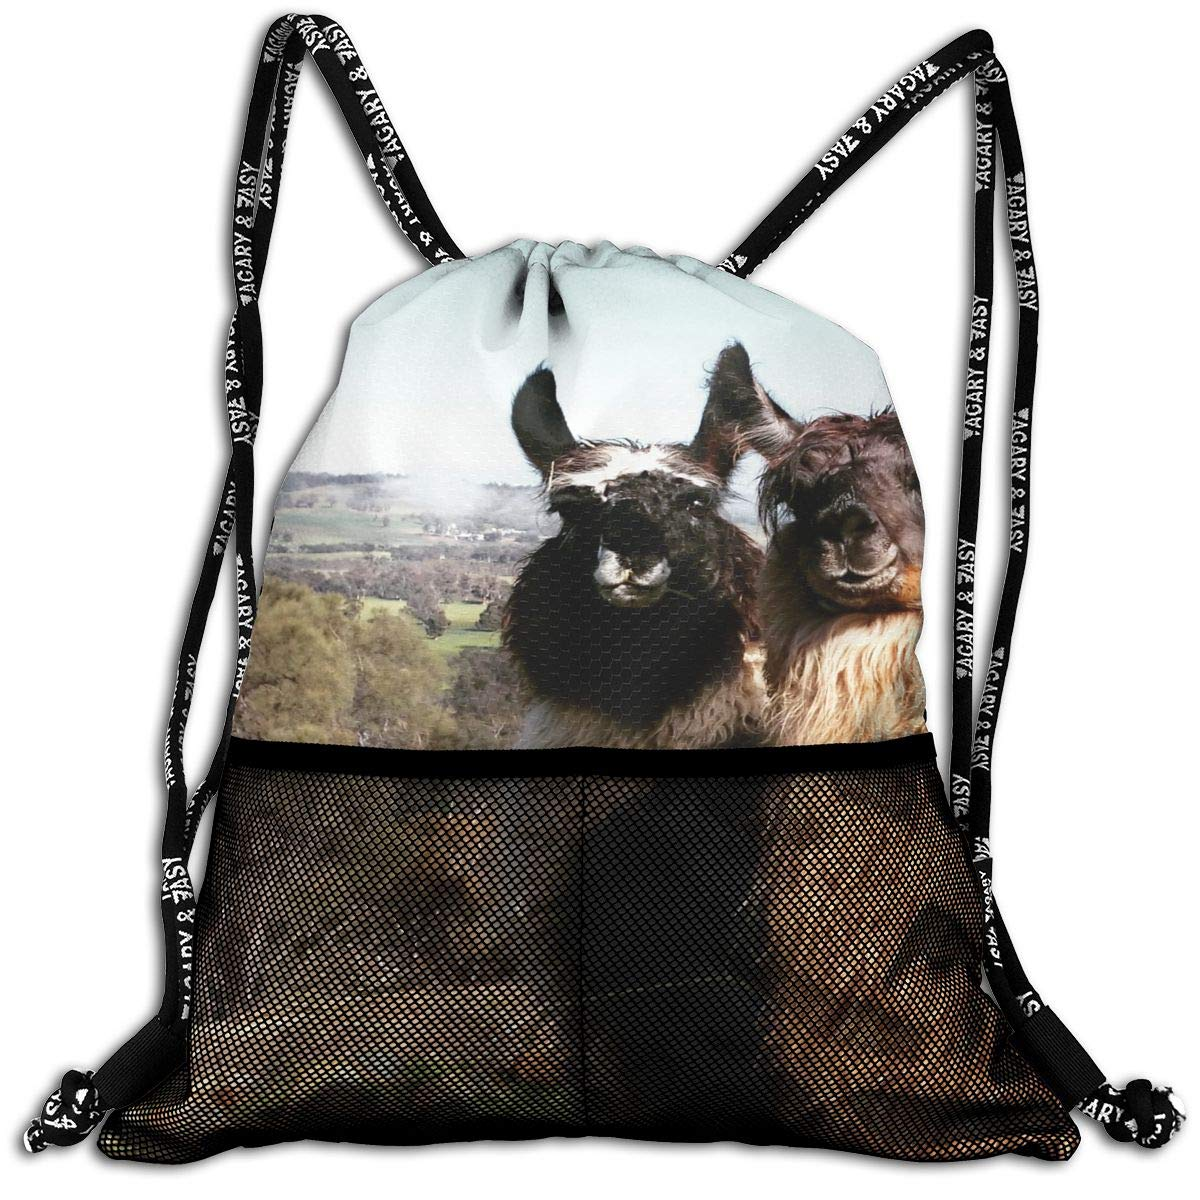 VRLGWDHD Two Llamas Unisex Full All Over Print Sport Gym Drawstring Bags Accessories Bag with Straps for Gift with Convenient Front Pockets